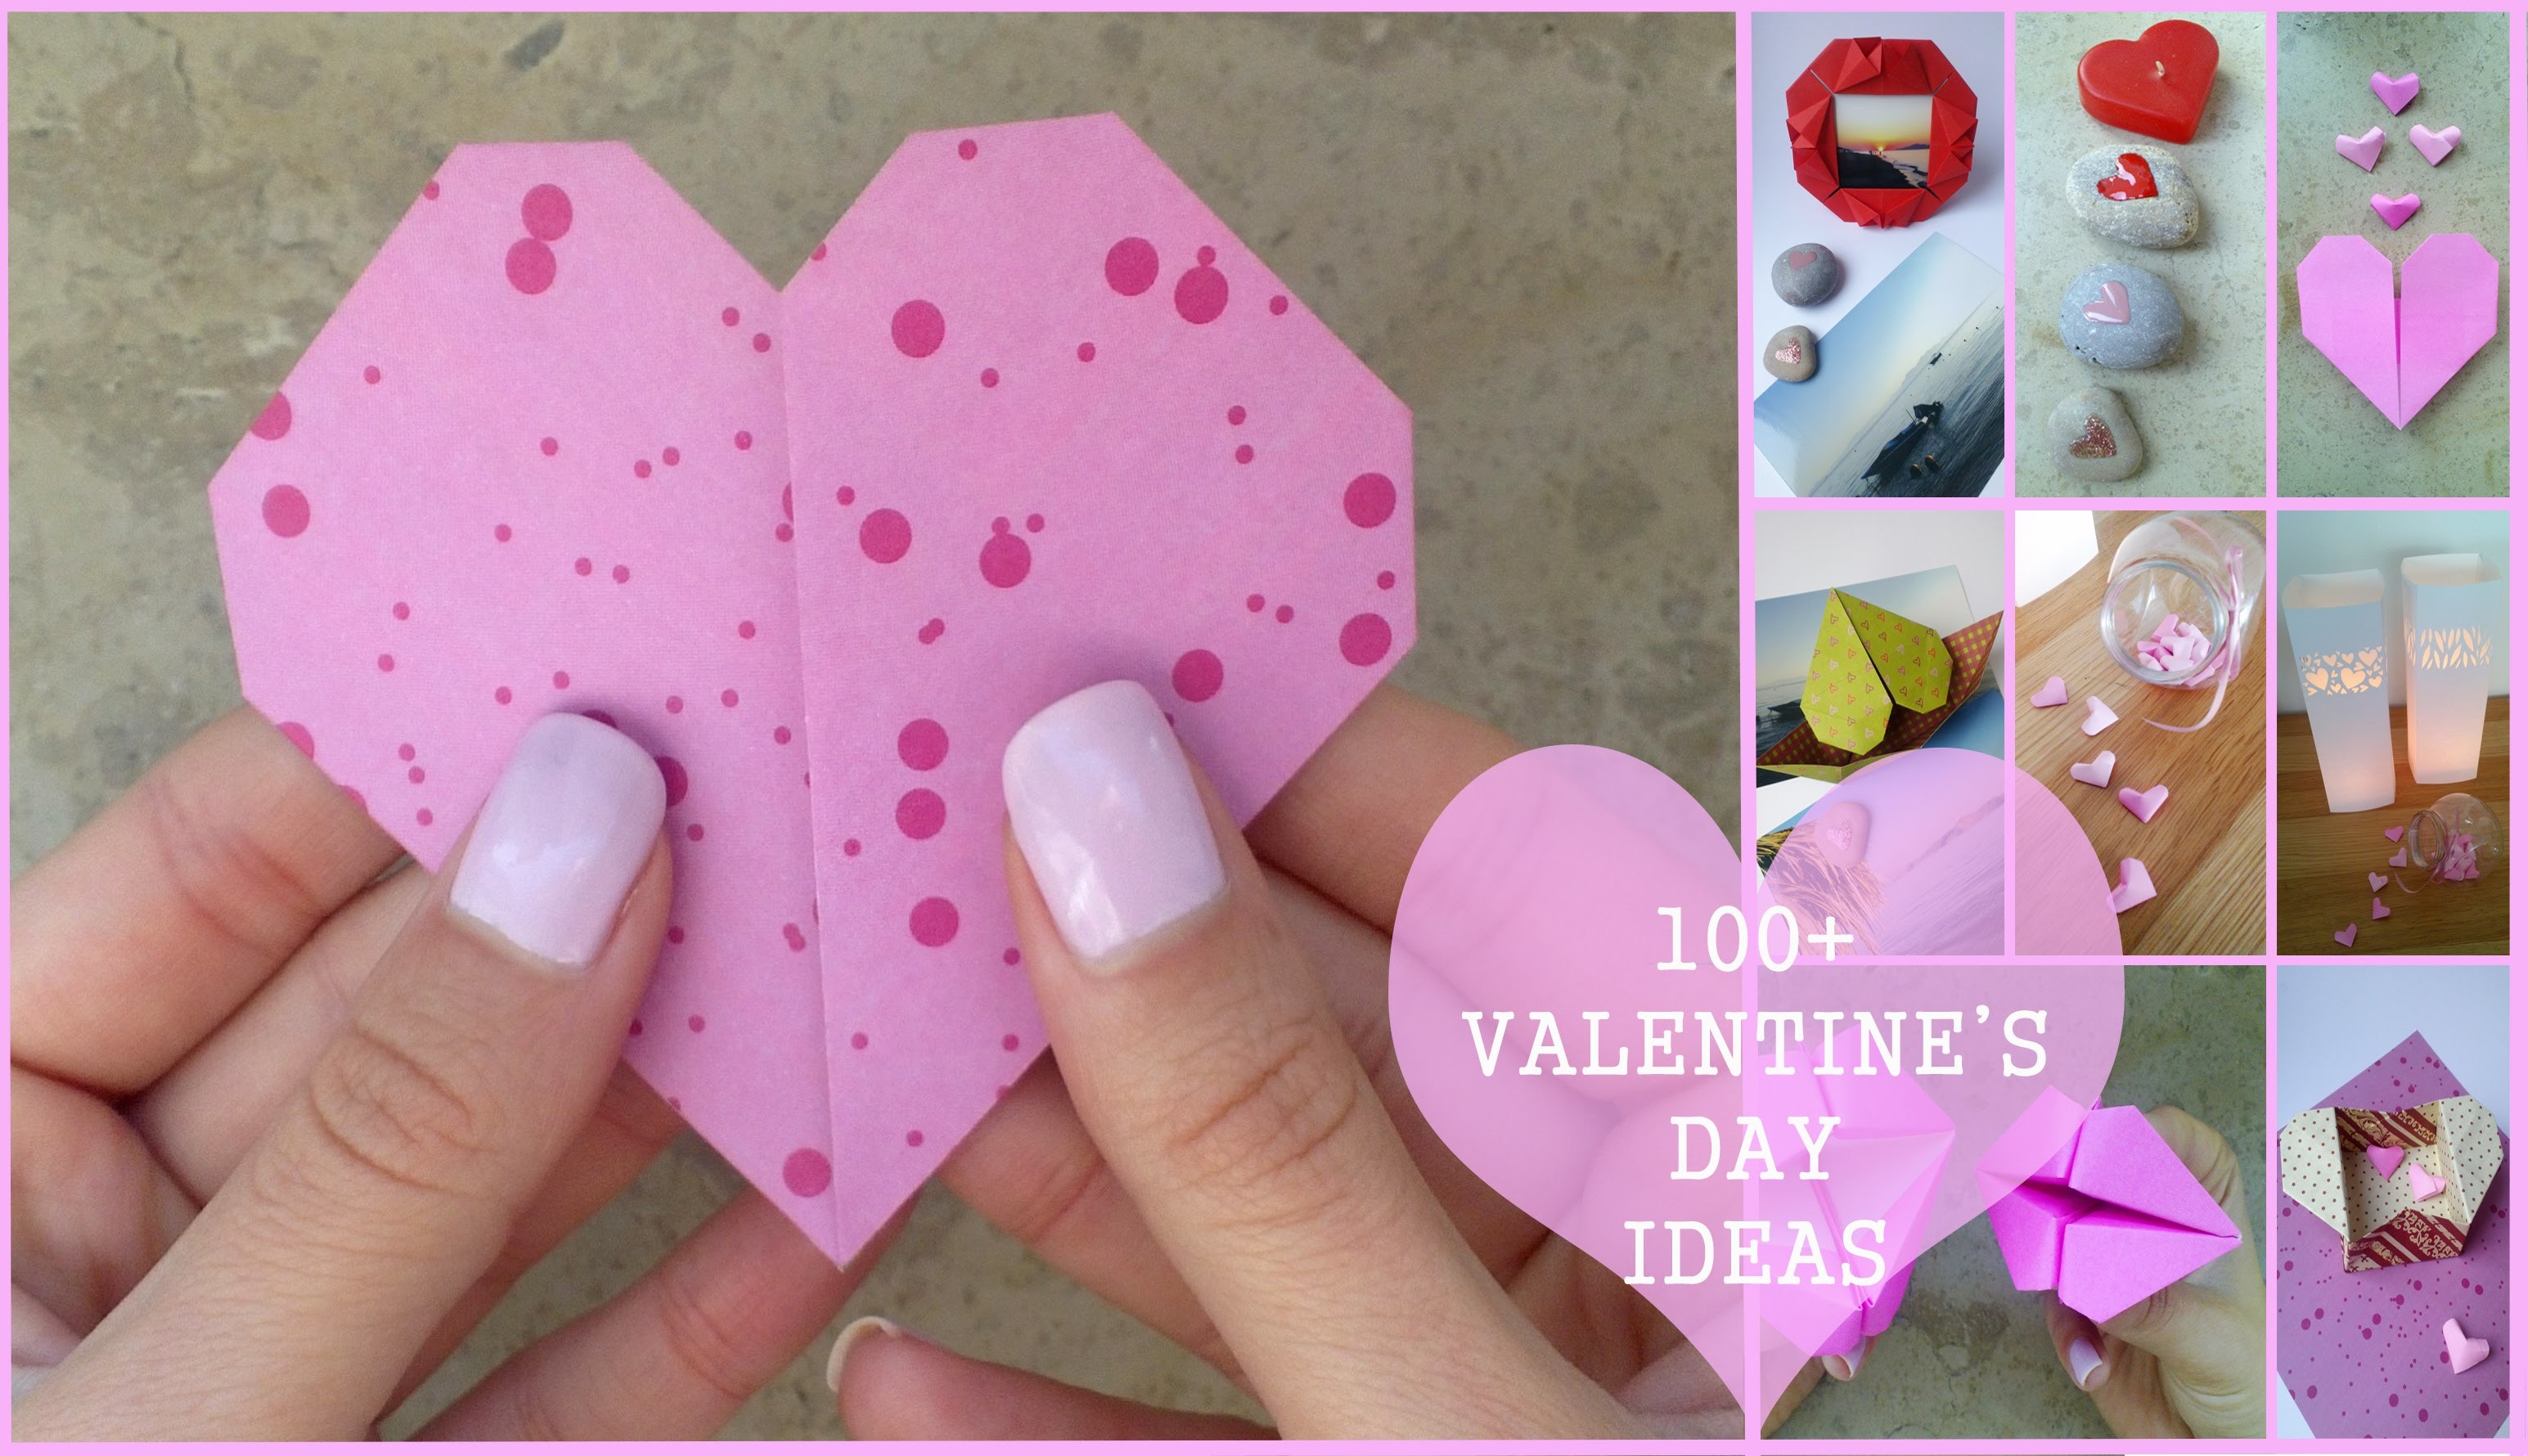 DIY 100+ VALENTINE'S DAY IDEAS - #10 Origami heart (3 steps).